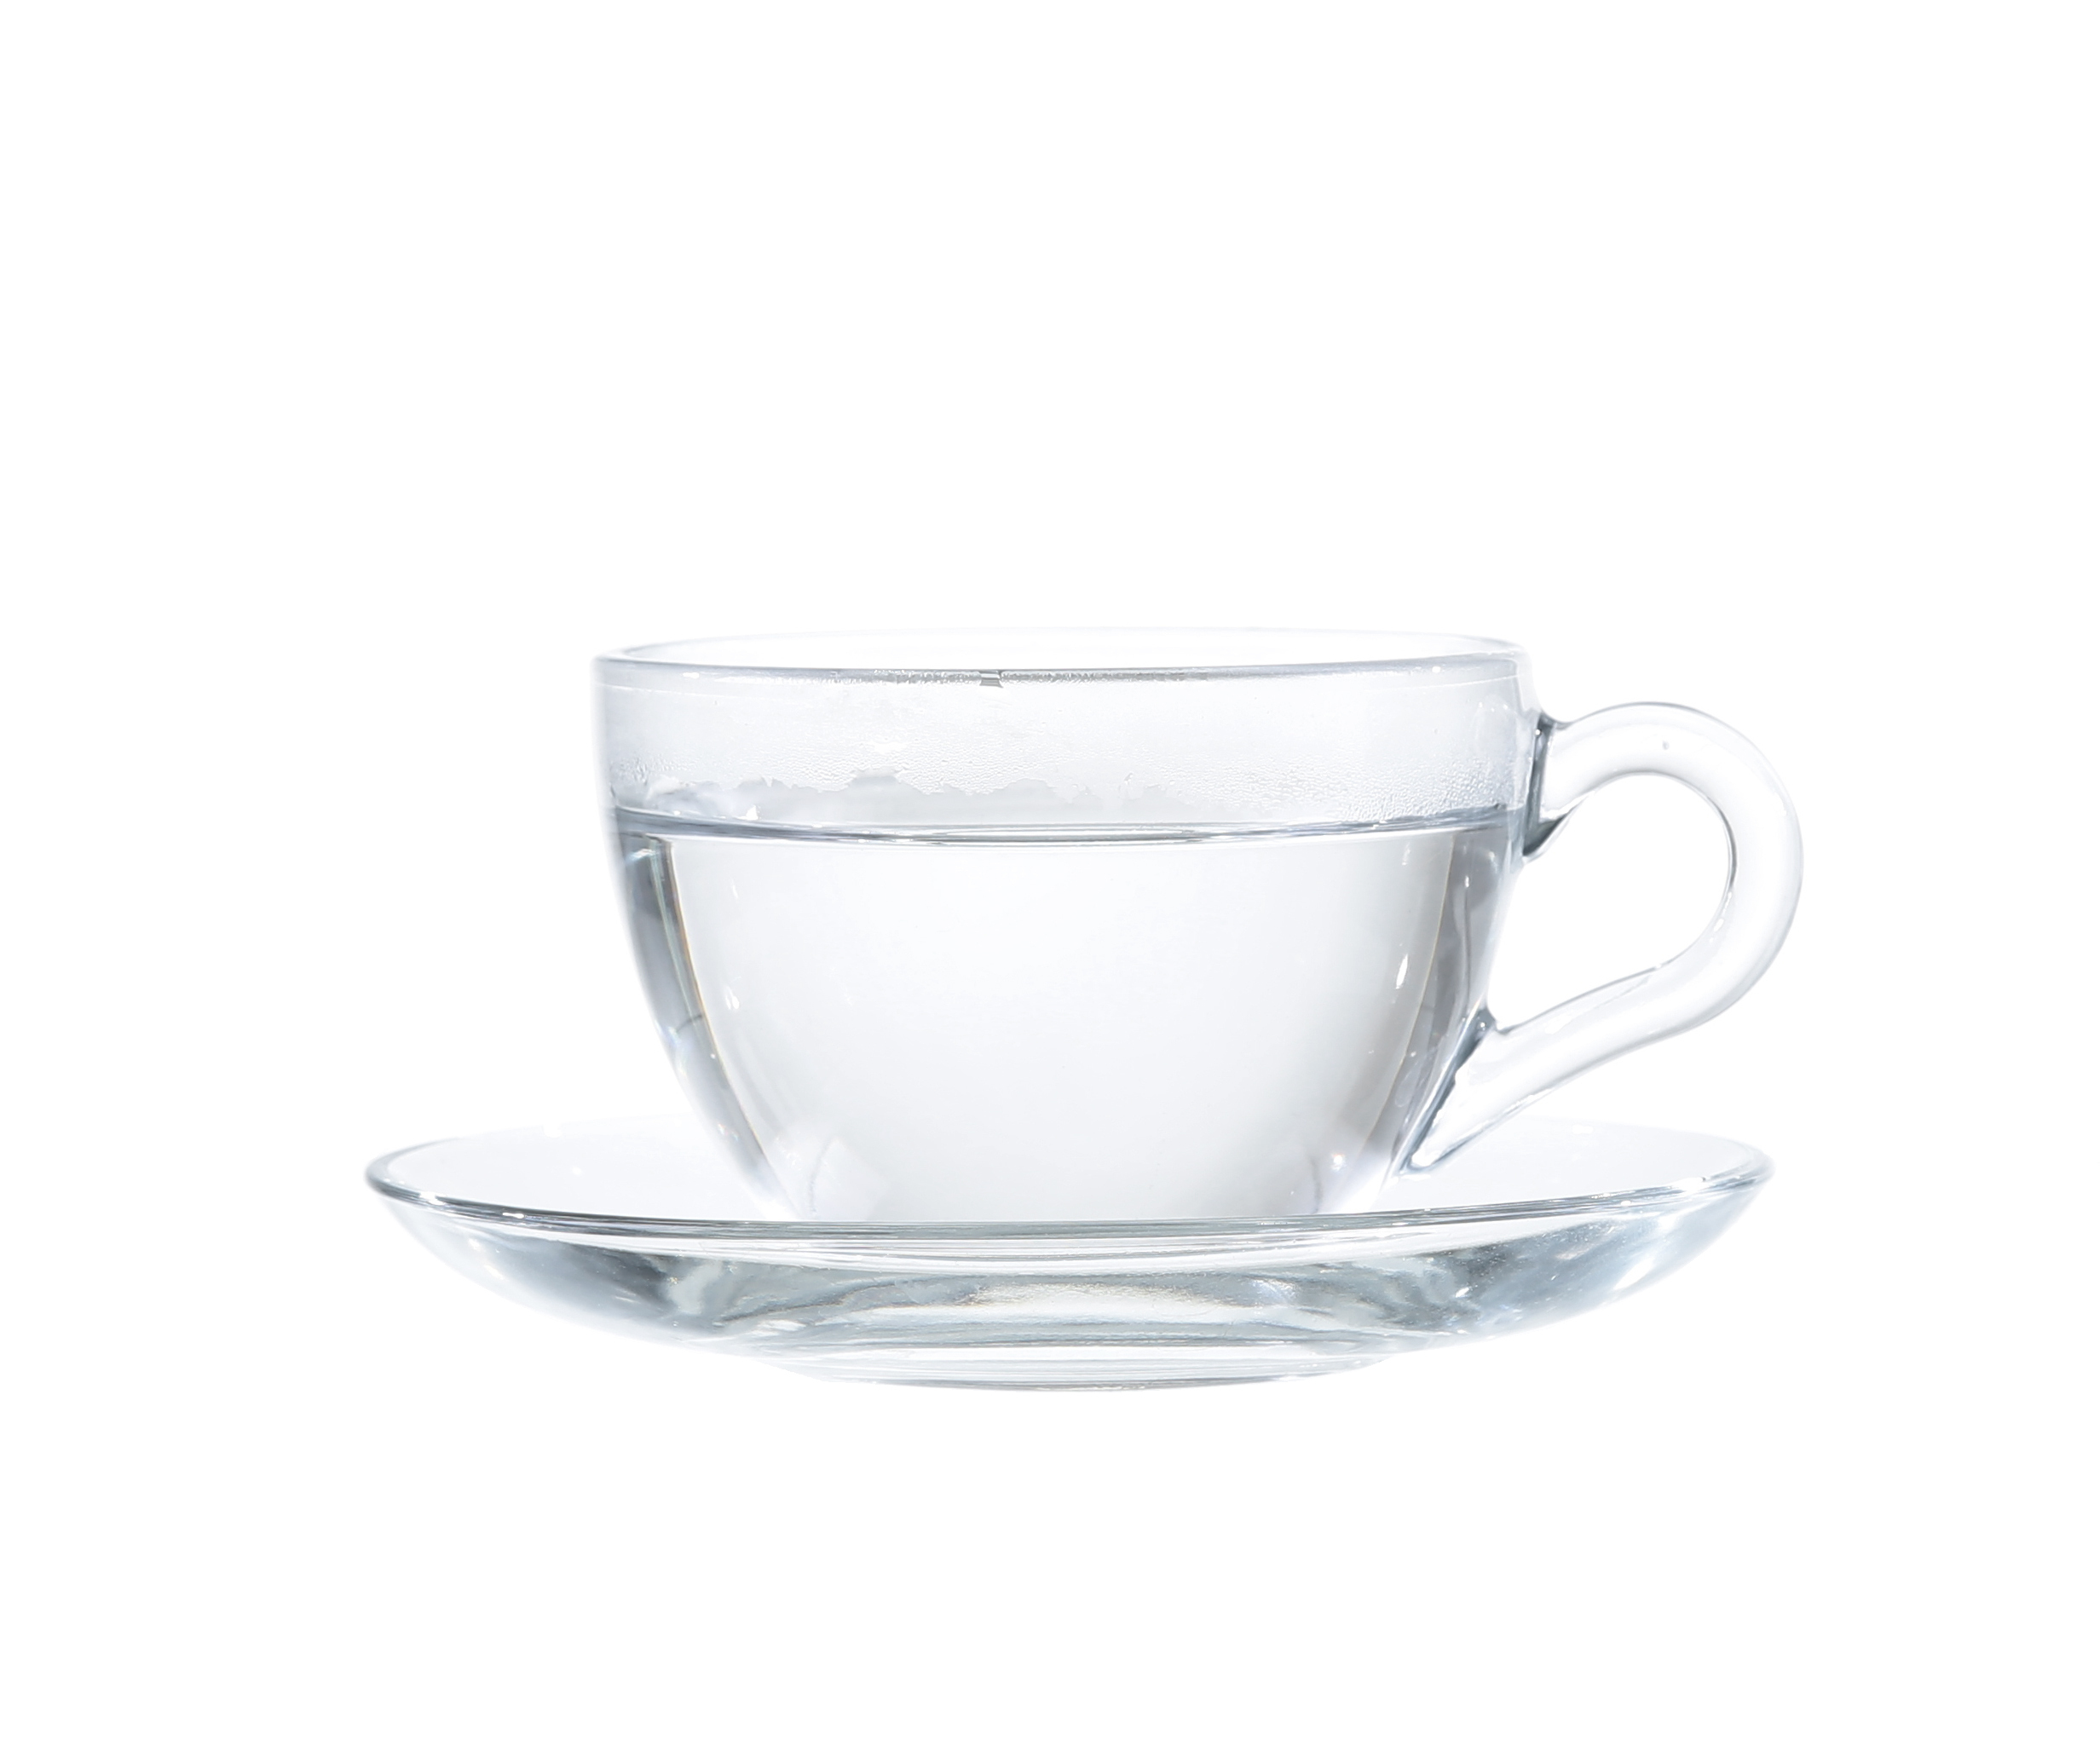 purified water in tea